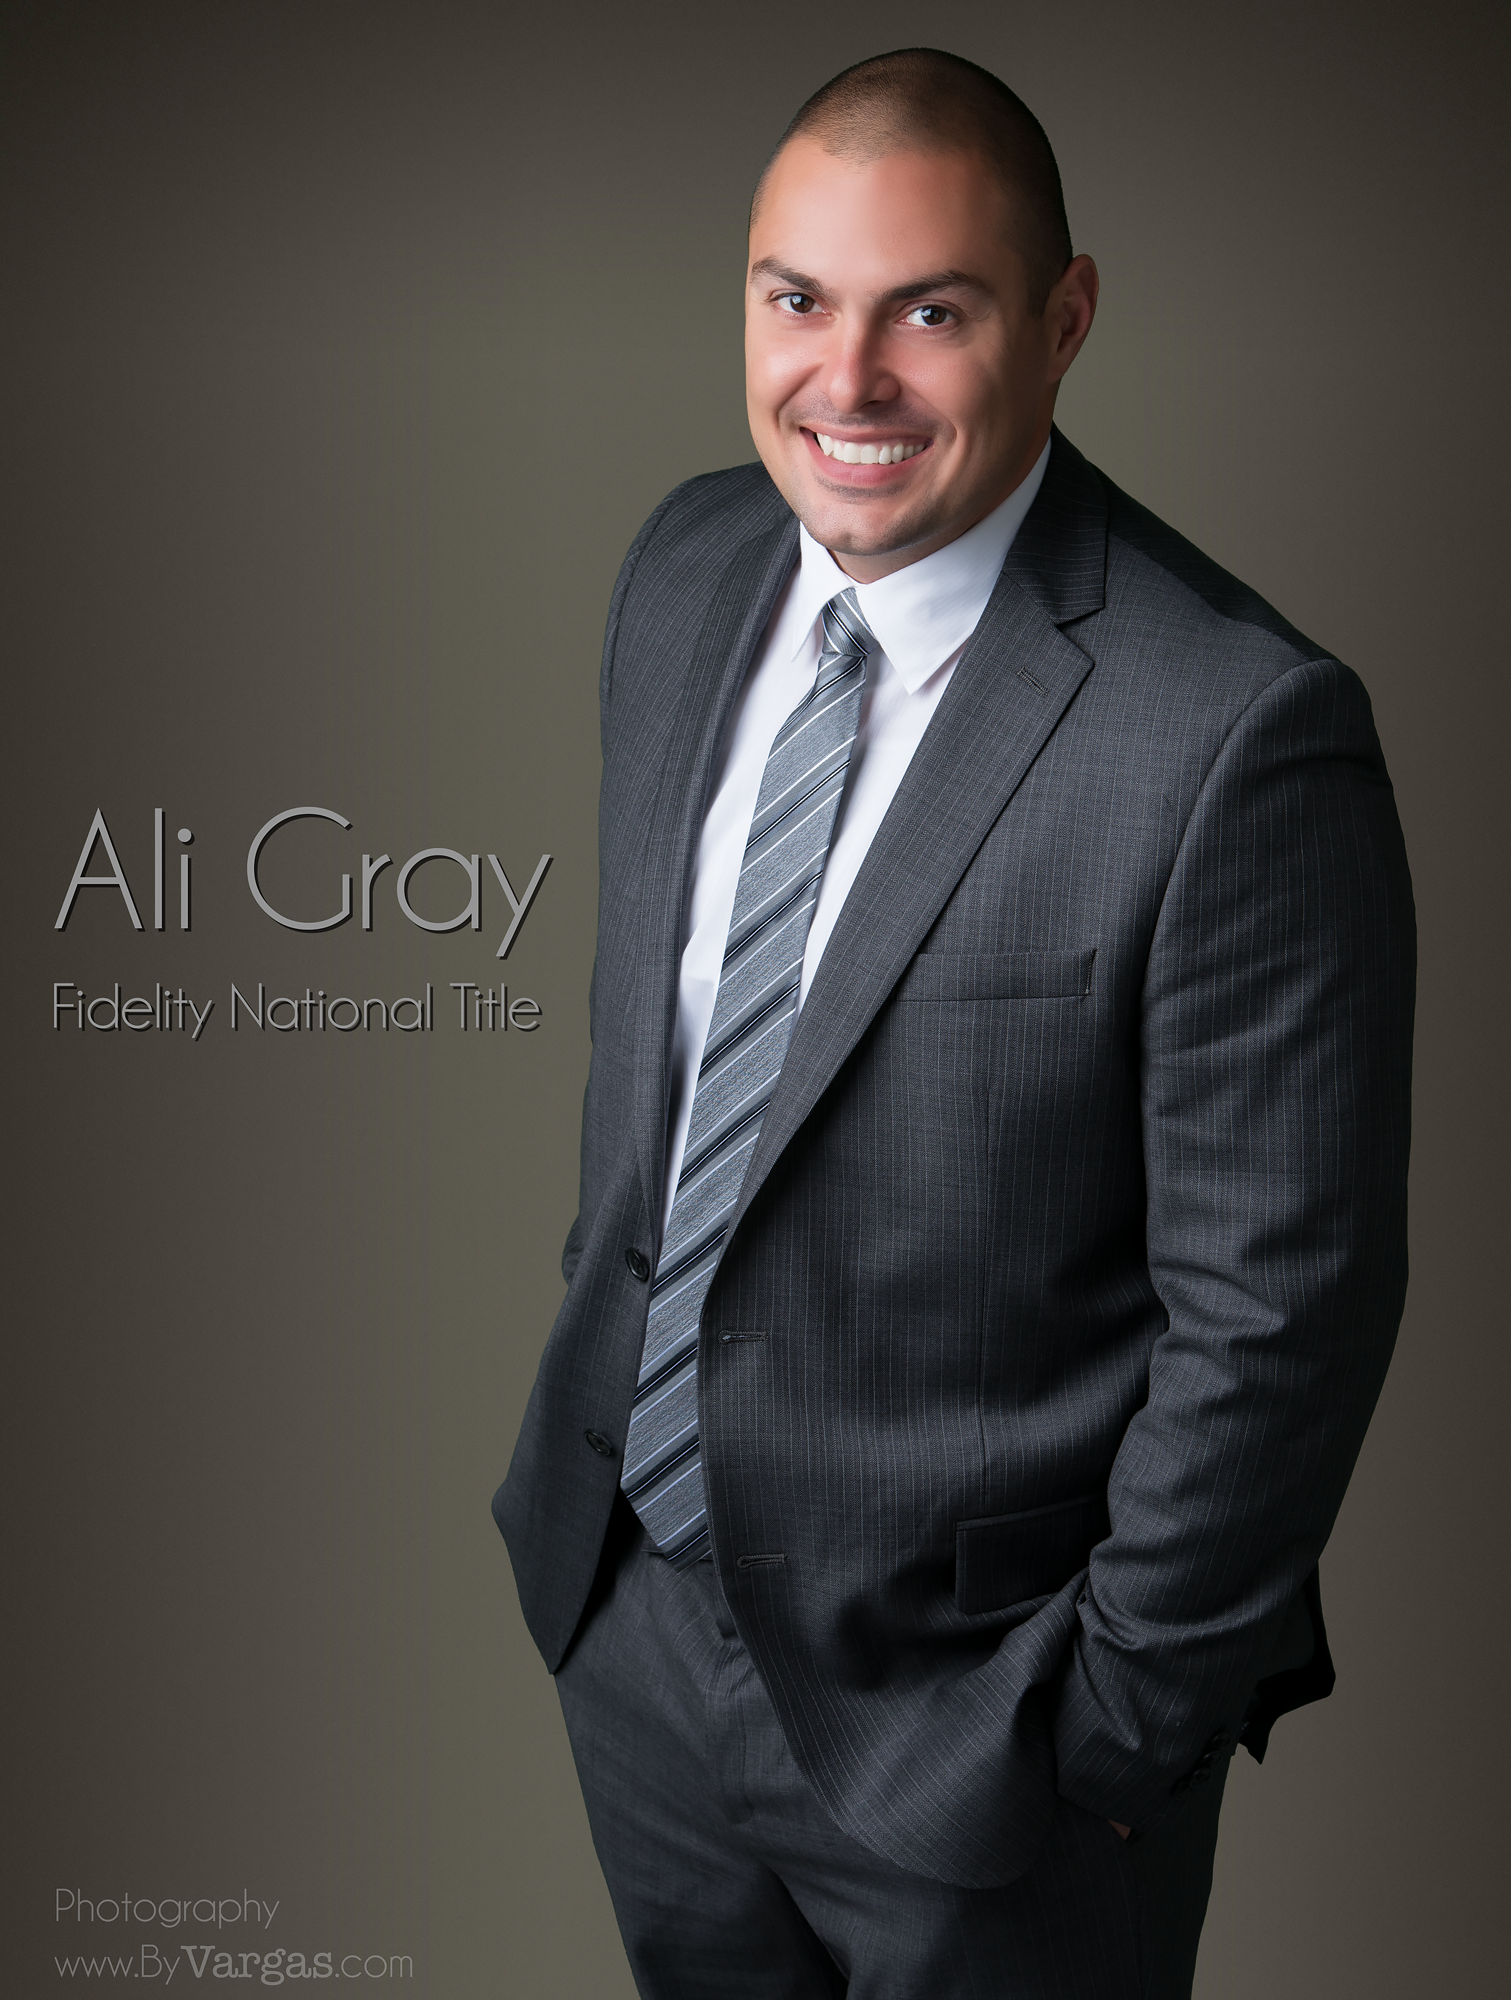 Gray_Ali-Respresentative-Fidelity-National-Title-Company-Head-Shot.png